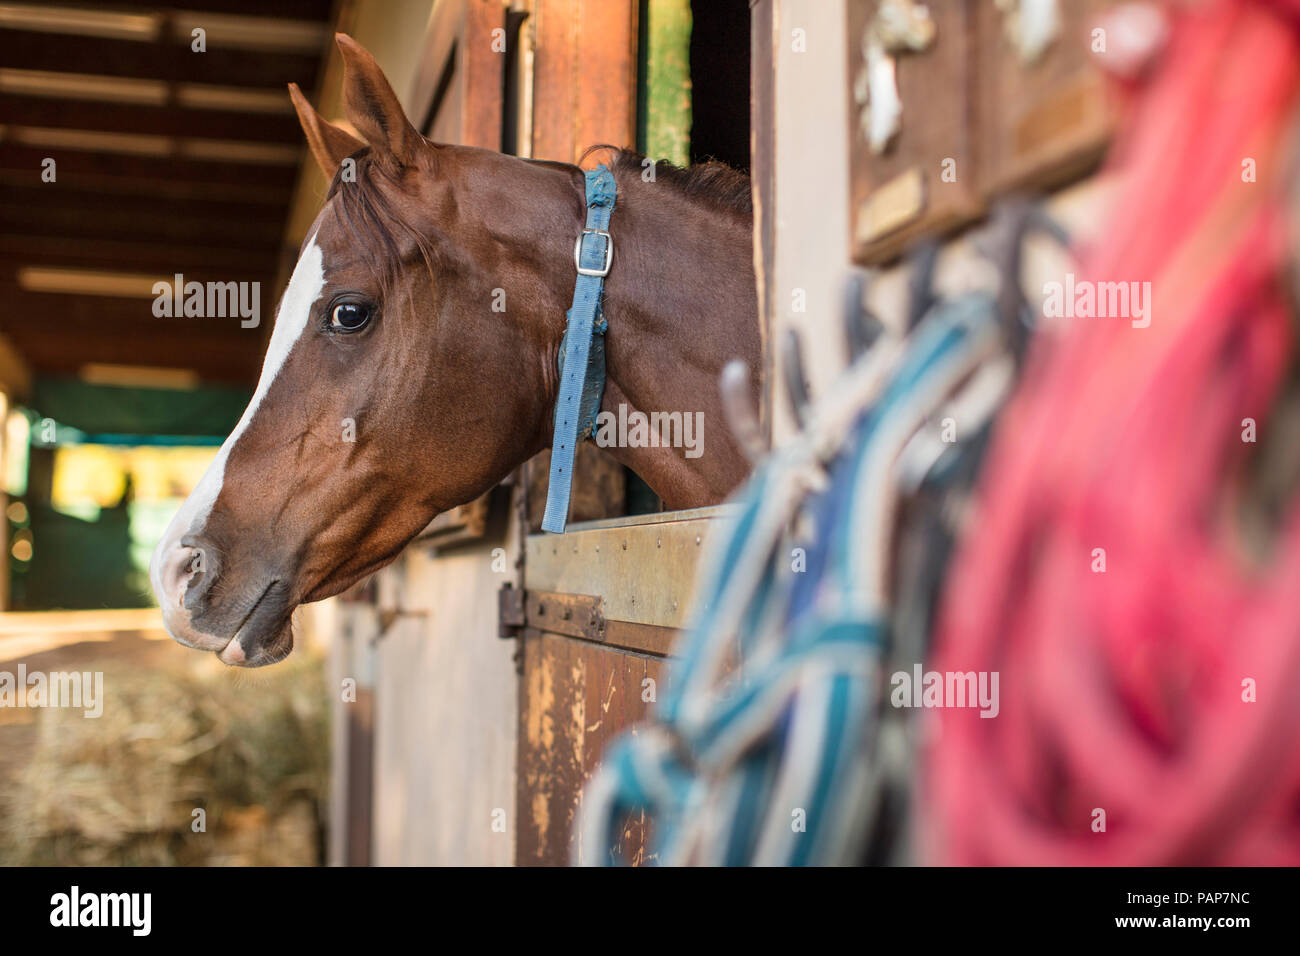 Horse on a farm in stable Stock Photo